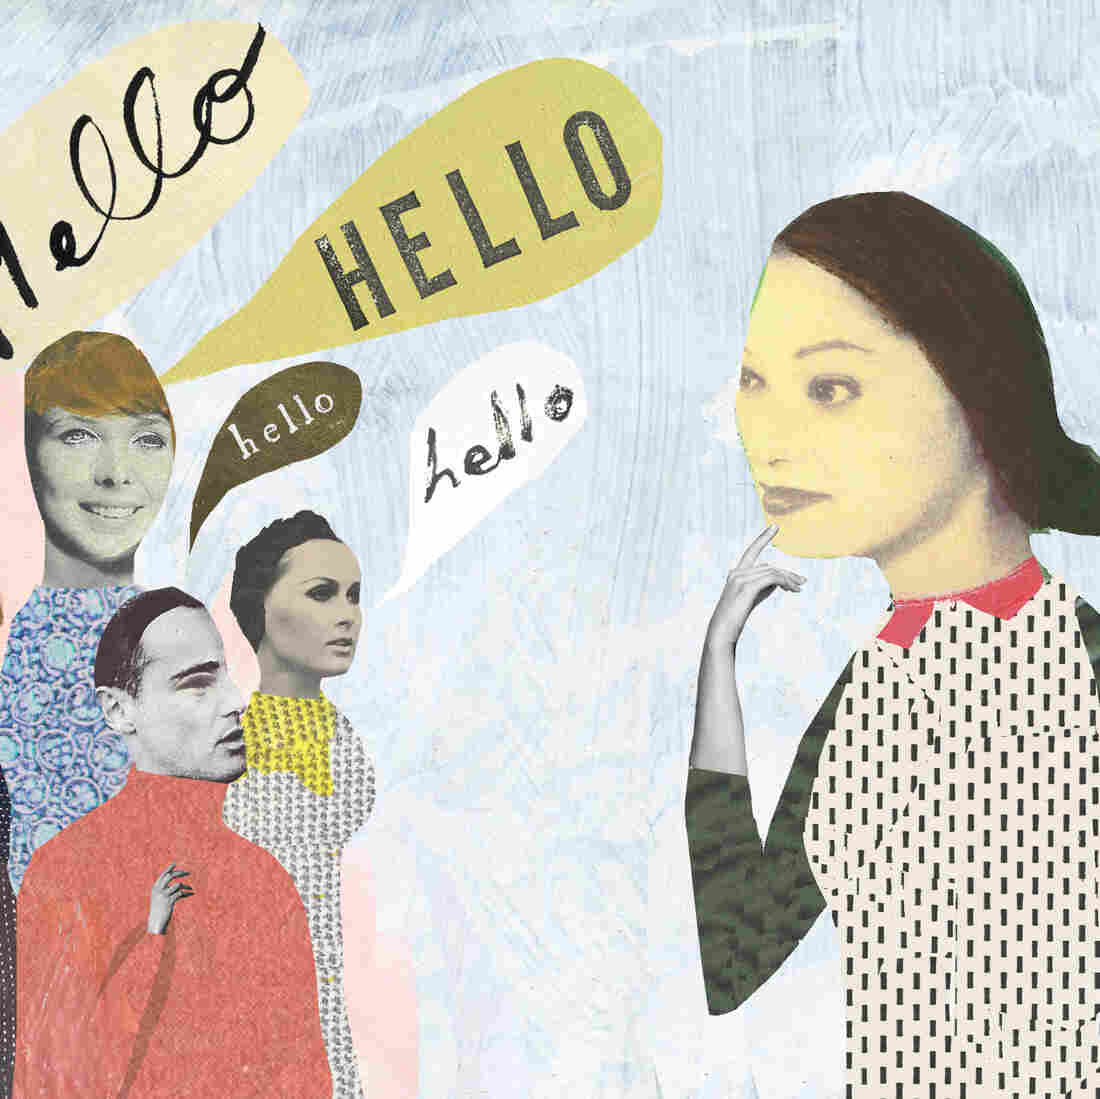 You Had Me At Hello: The Science Behind First Impressions